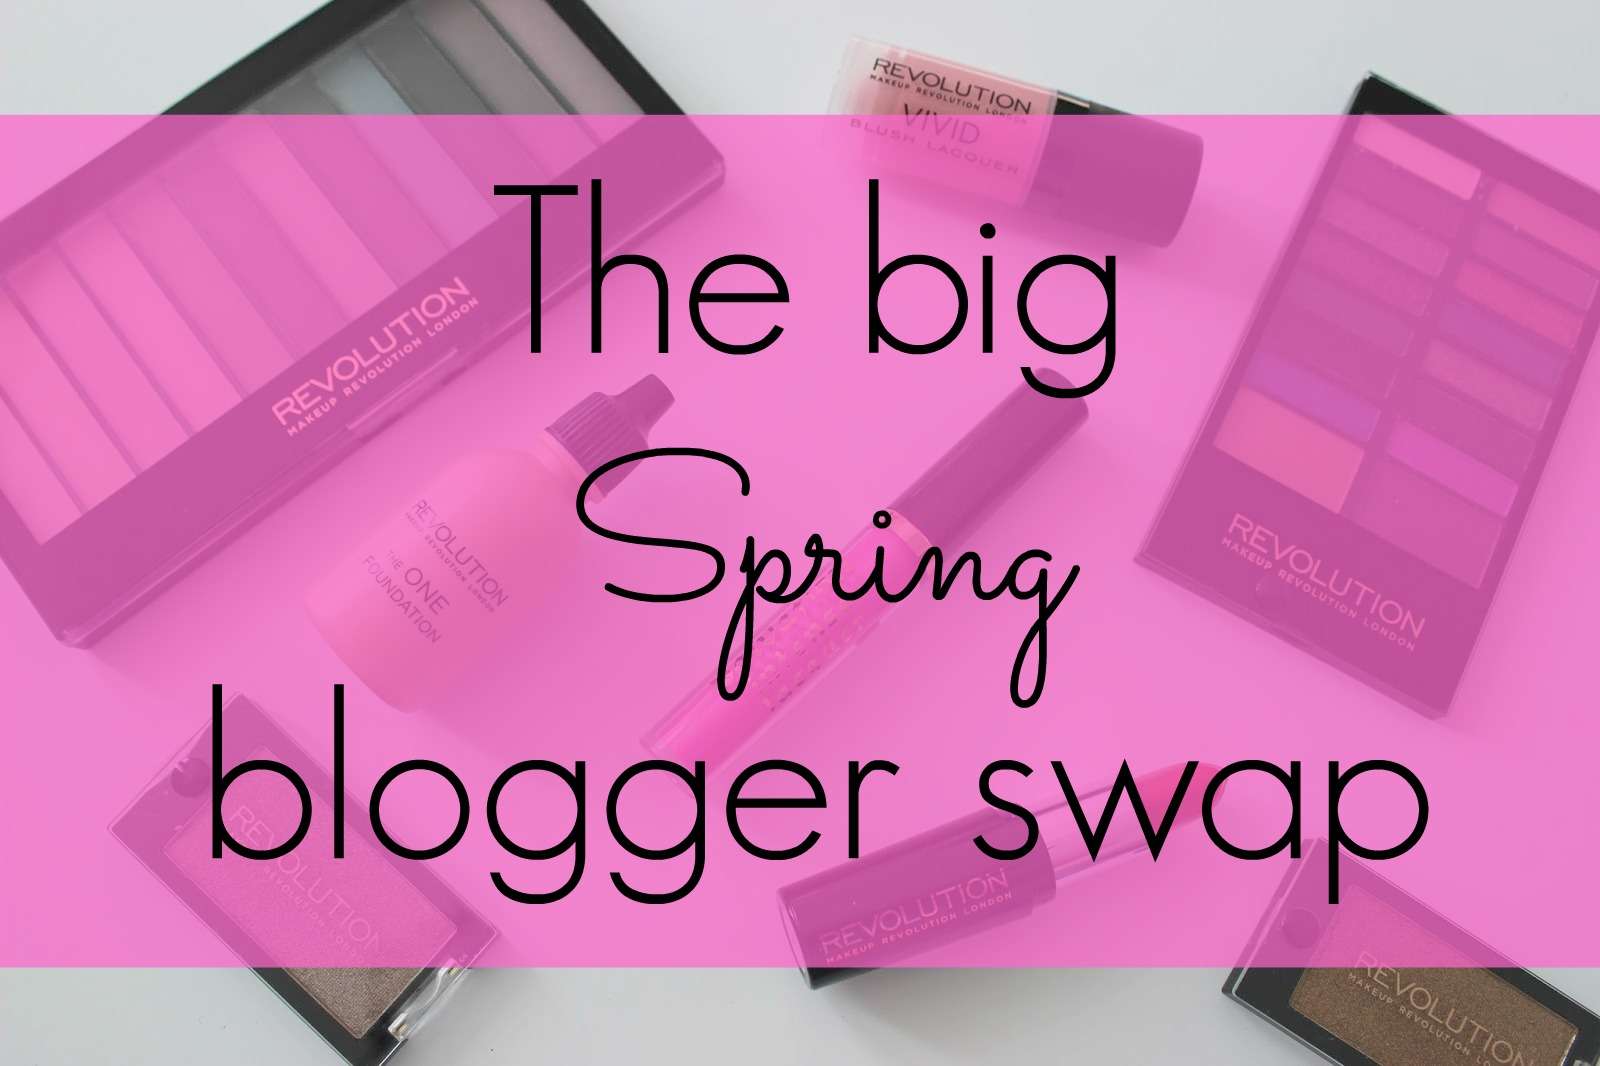 Tales of a Pale Face spring blogger swap